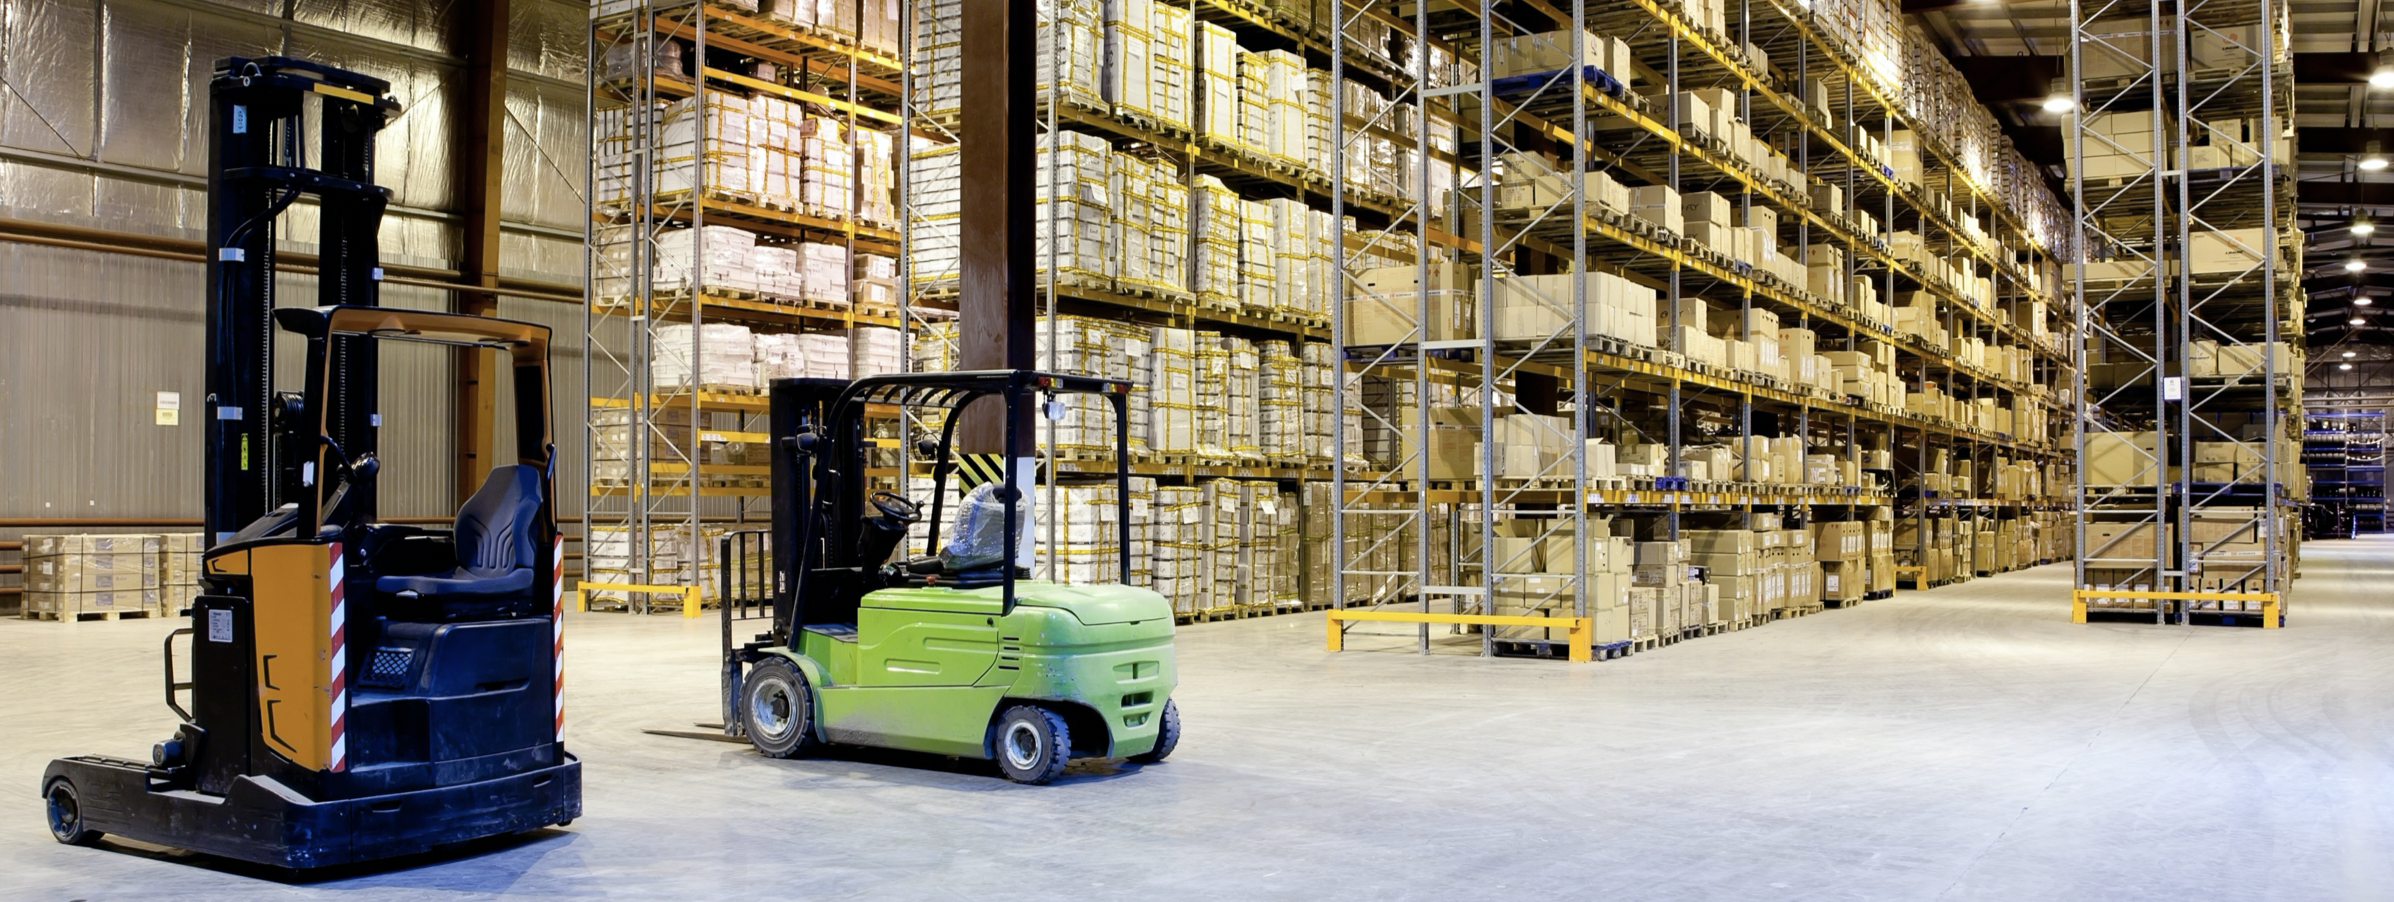 Reduct_Case_Study6_Forklift_Green_Orange_Stockroom